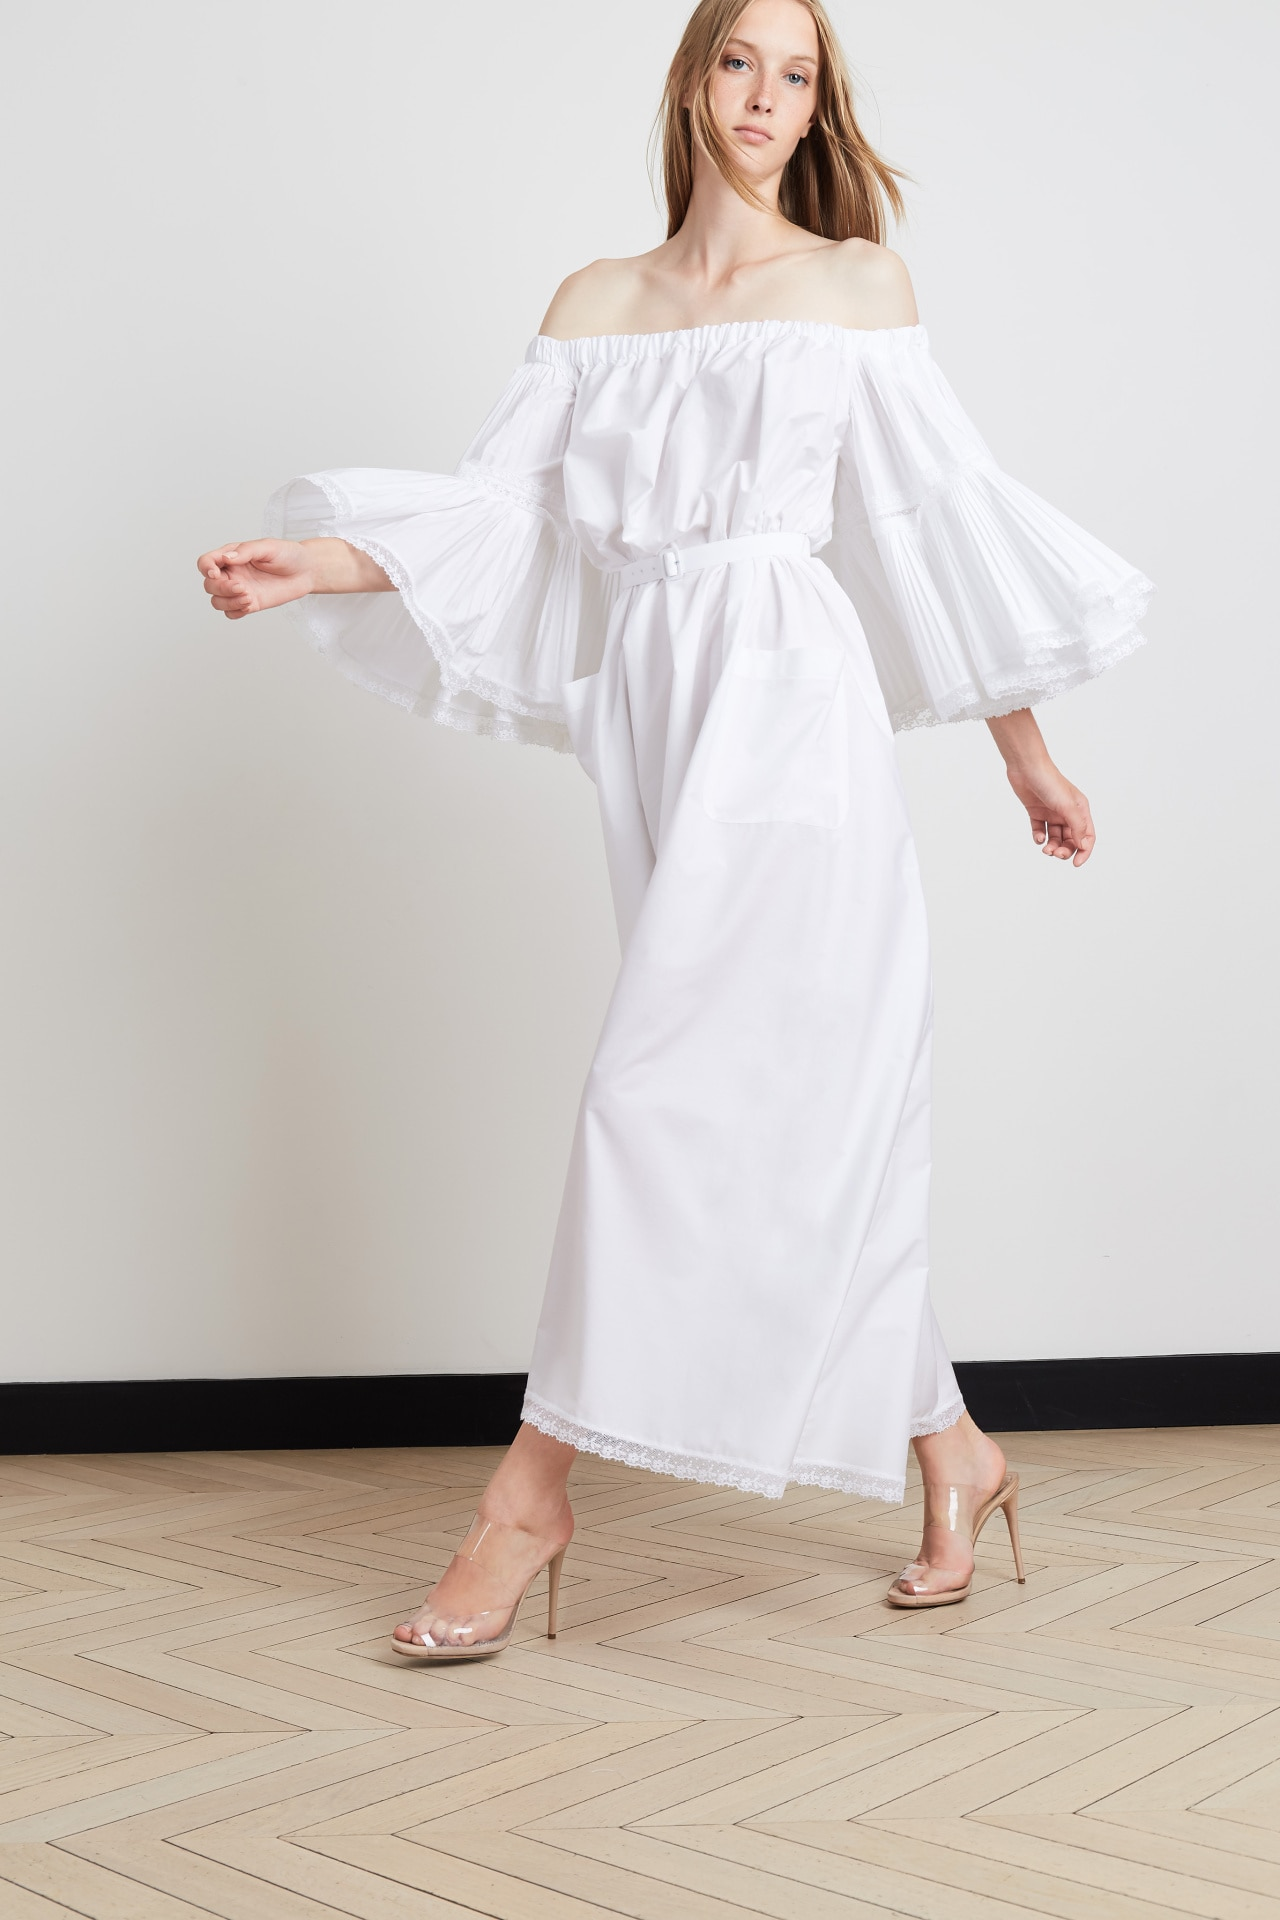 Alexis Mabille resort 2020